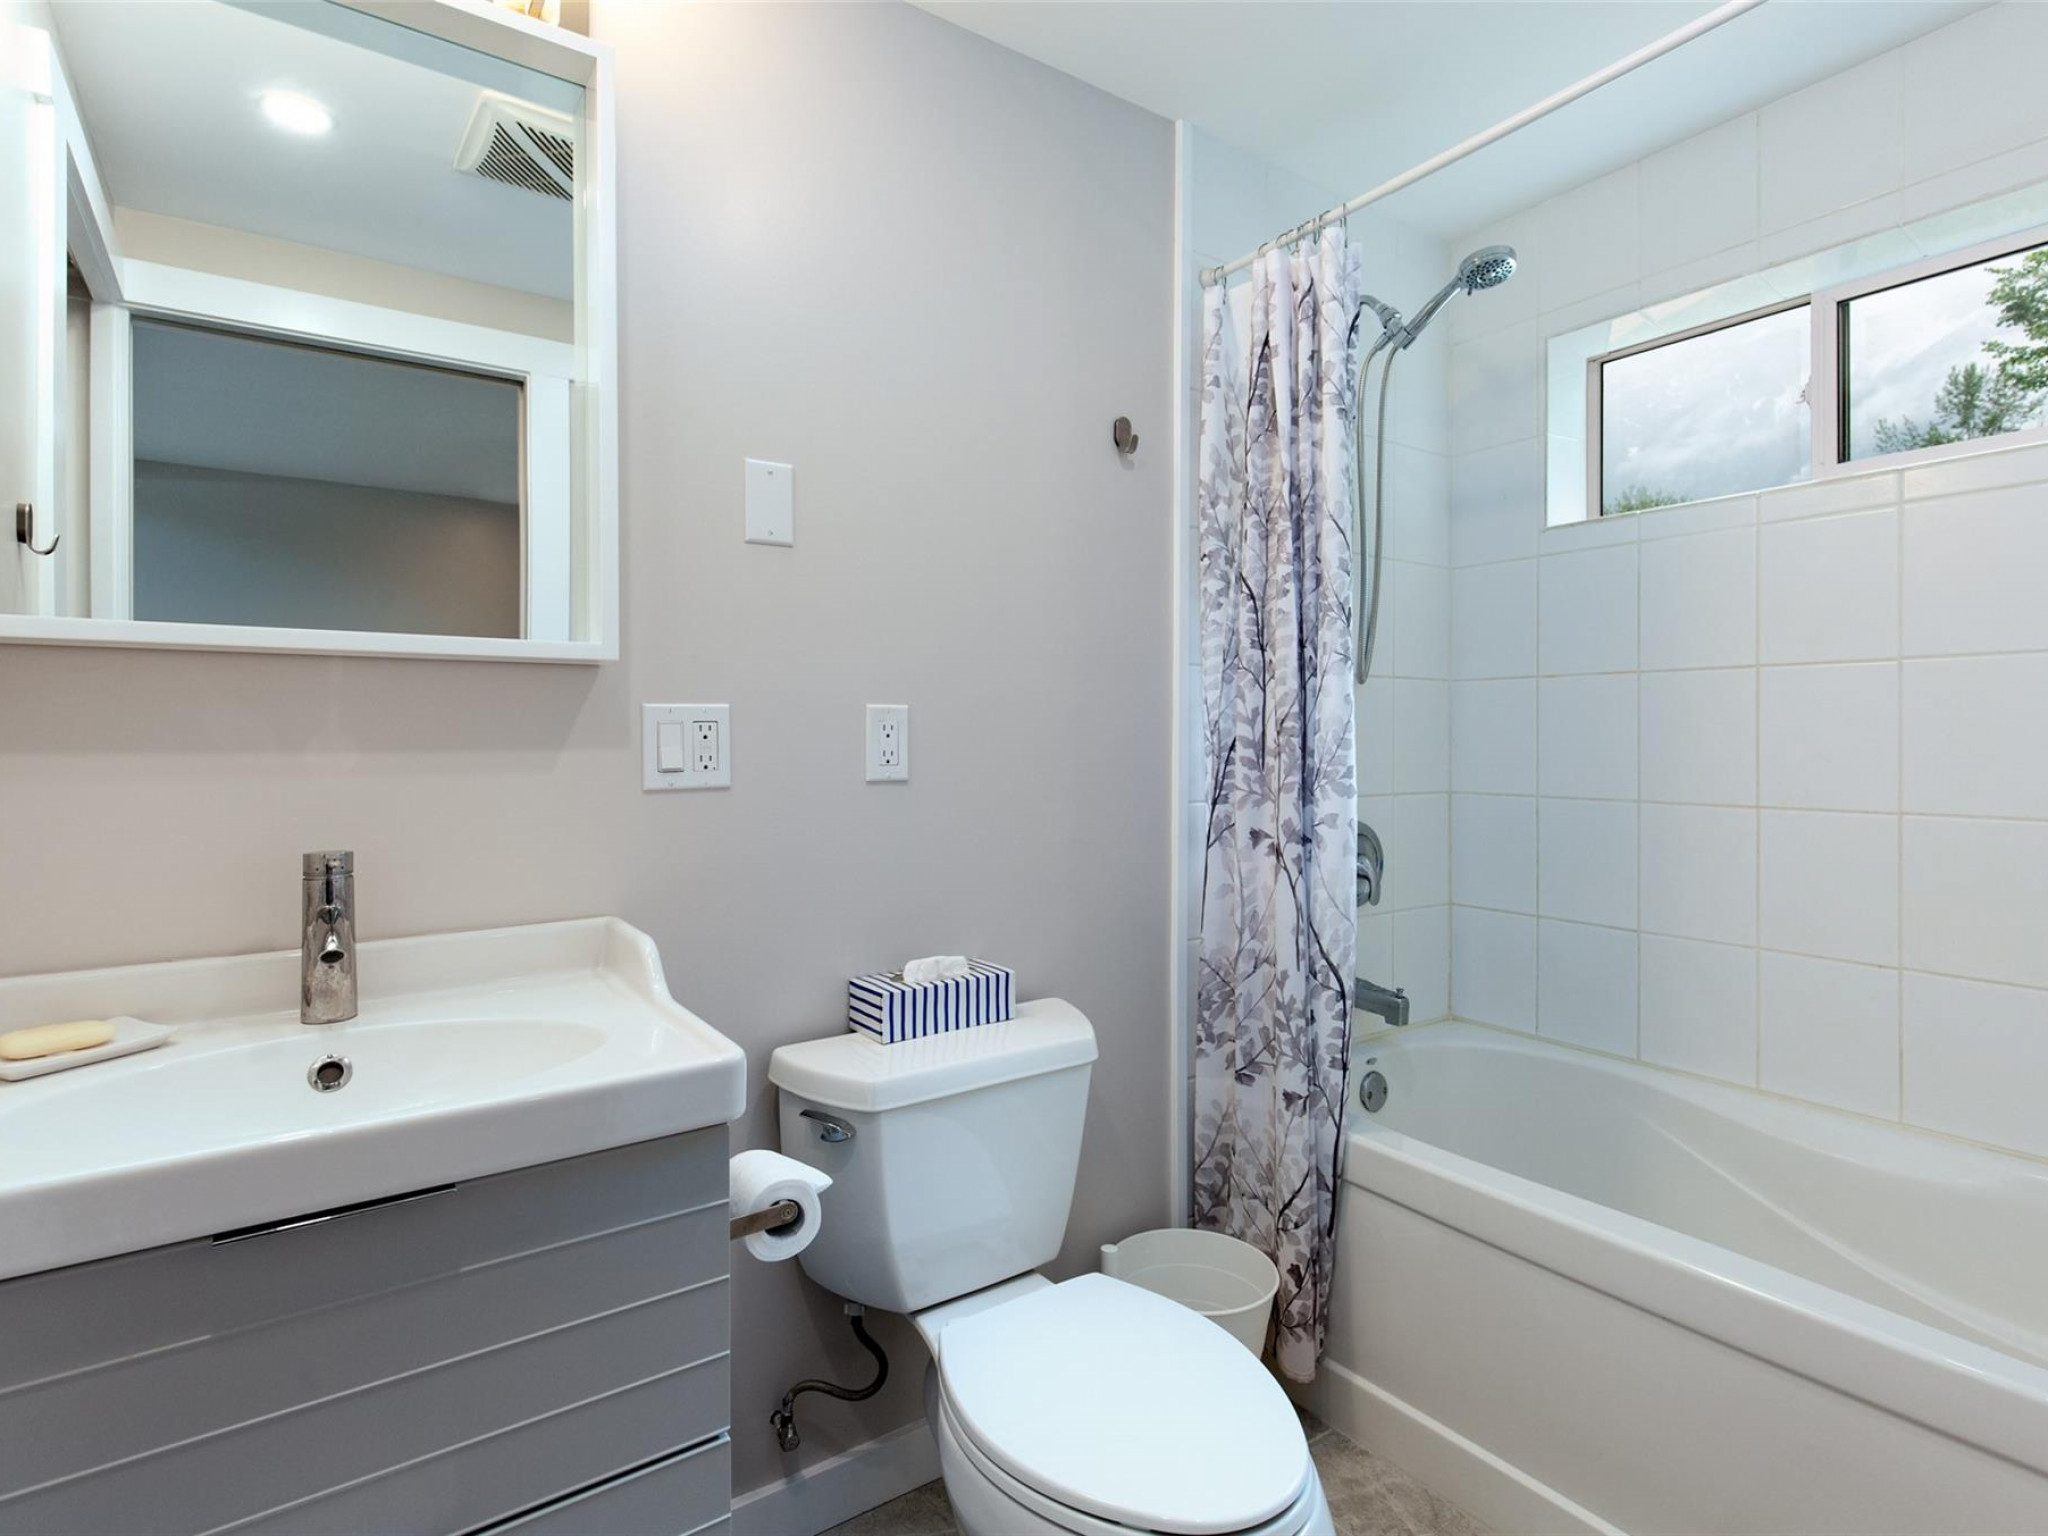 7348 Clover Road image 15